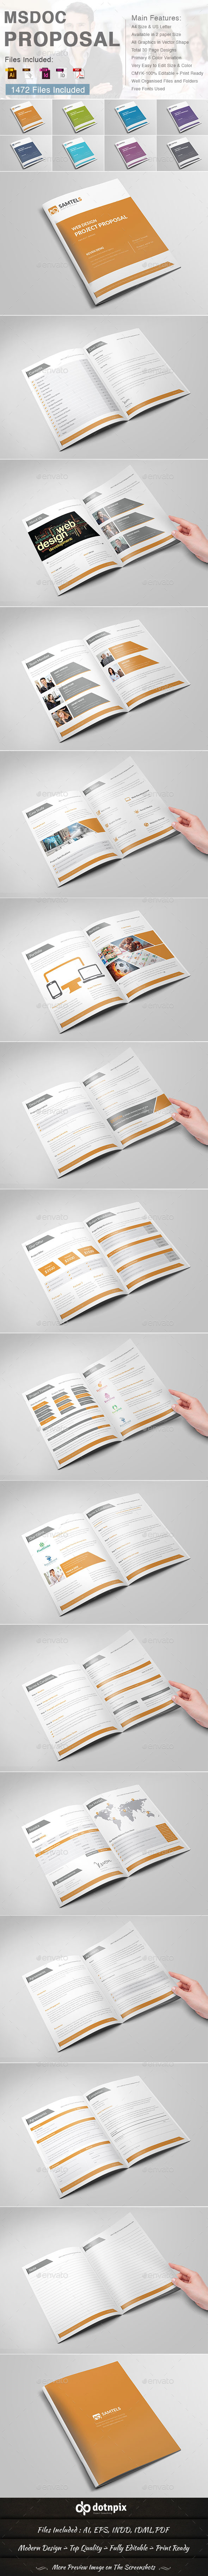 GraphicRiver Msdoc Proposal 9242000